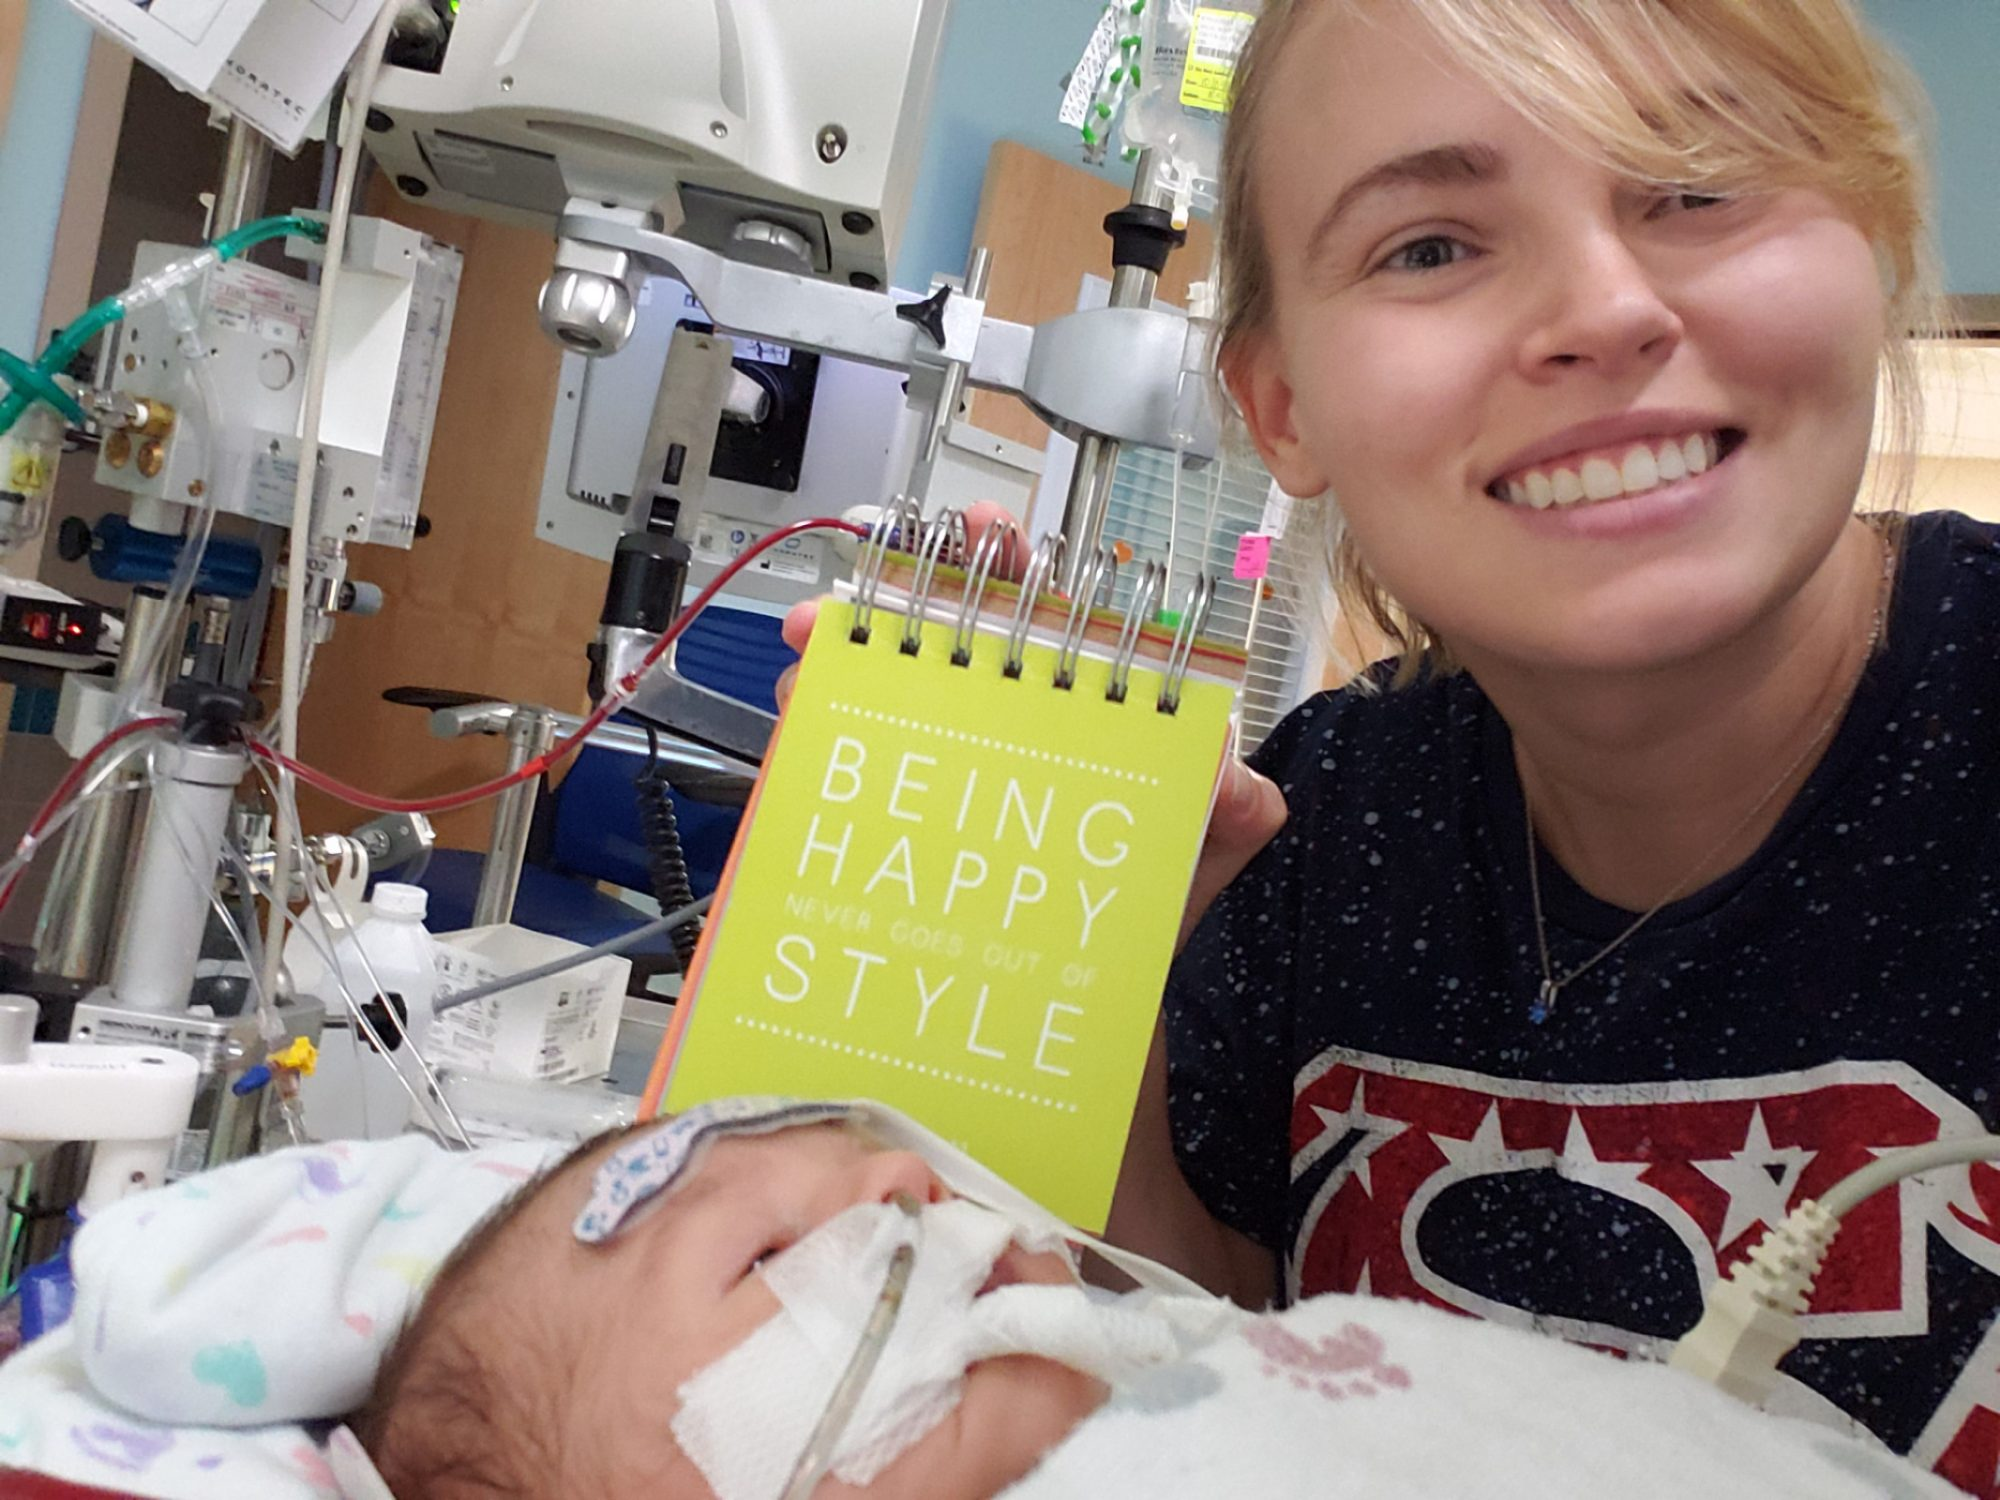 Uber Driver Buys Clothes for Sick Baby After Picking Up New Mom: 'She Touched My Heart'